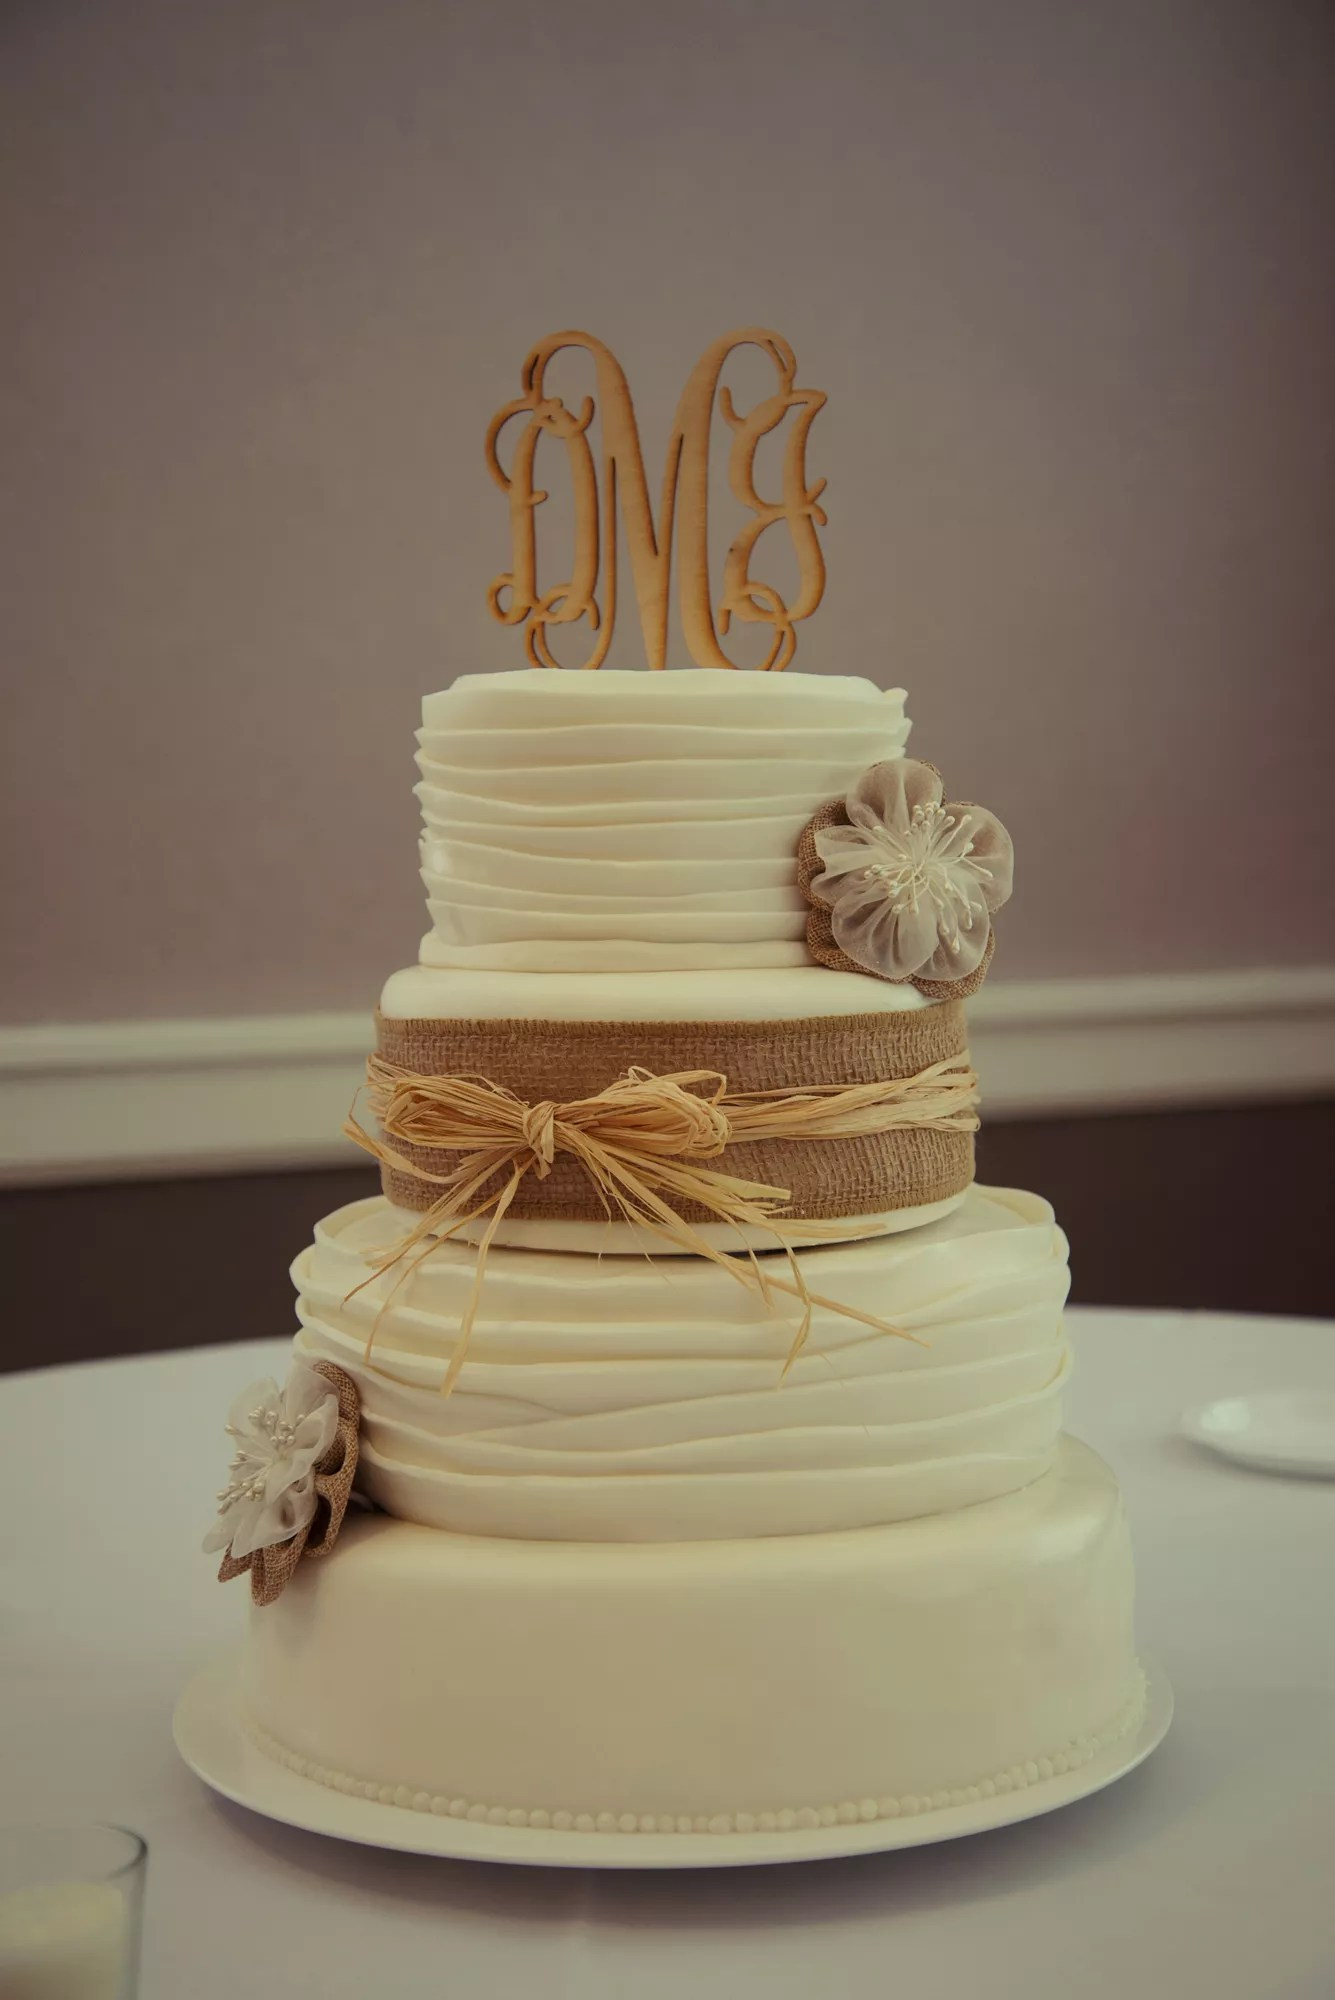 Rustic Wedding Cake With Burlap And Straw Ribbon And Monogram Cake Topper